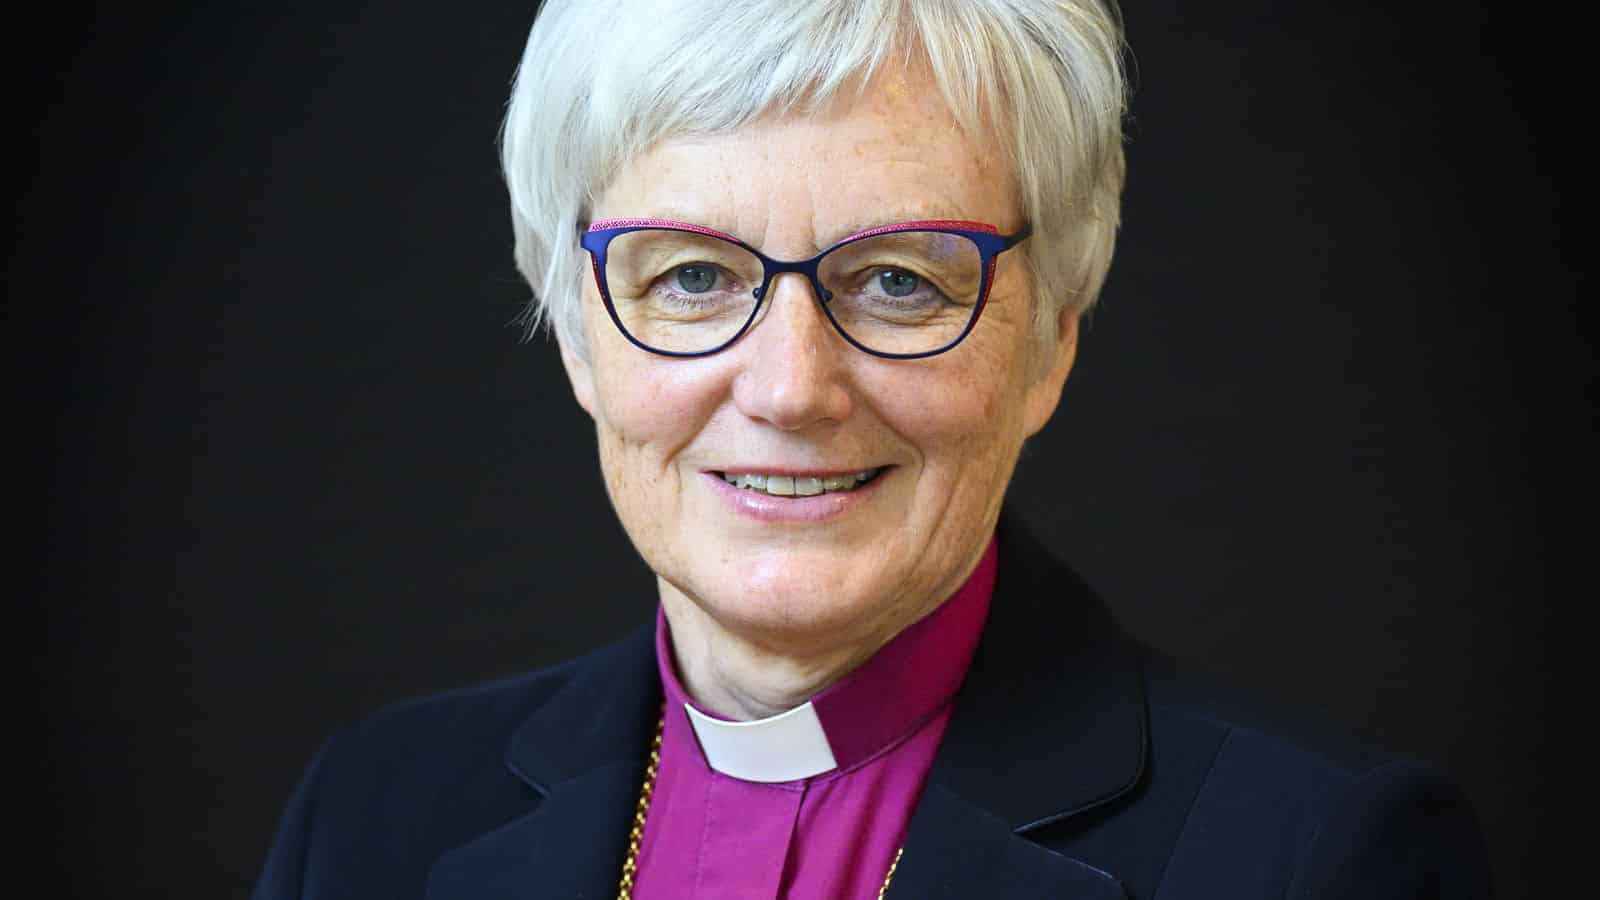 Antje Jackelén is Archbishop of the Church of Sweden